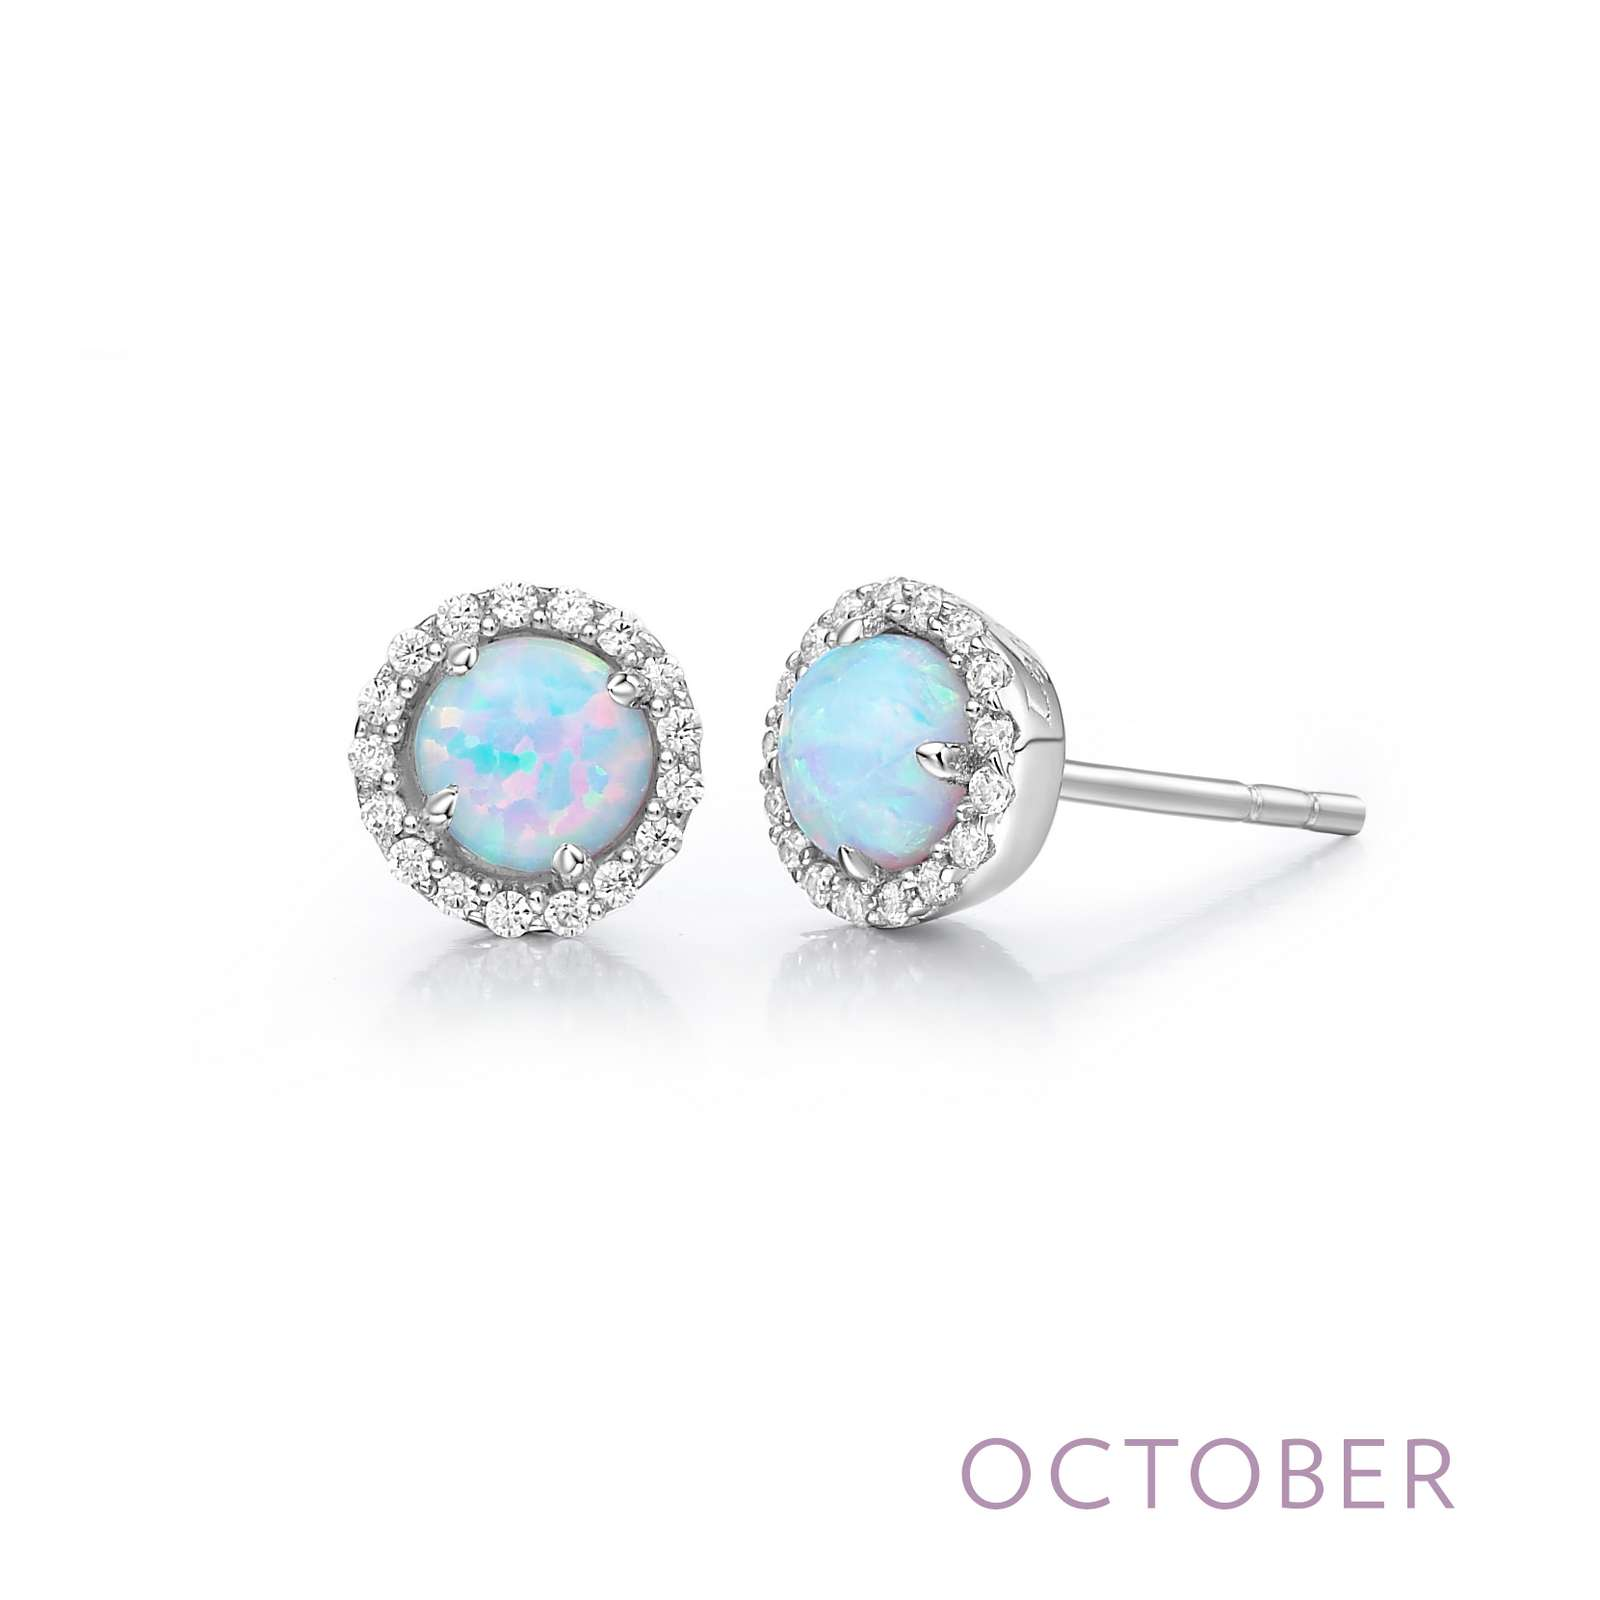 October - Opal.  Adorn yourself with Lafonn's birthstone jewelry. These halo stud earrings are set with simulated opals surrounded by Lafonn's signature Lassaire simulated diamonds in sterling silver bonded with platinum.